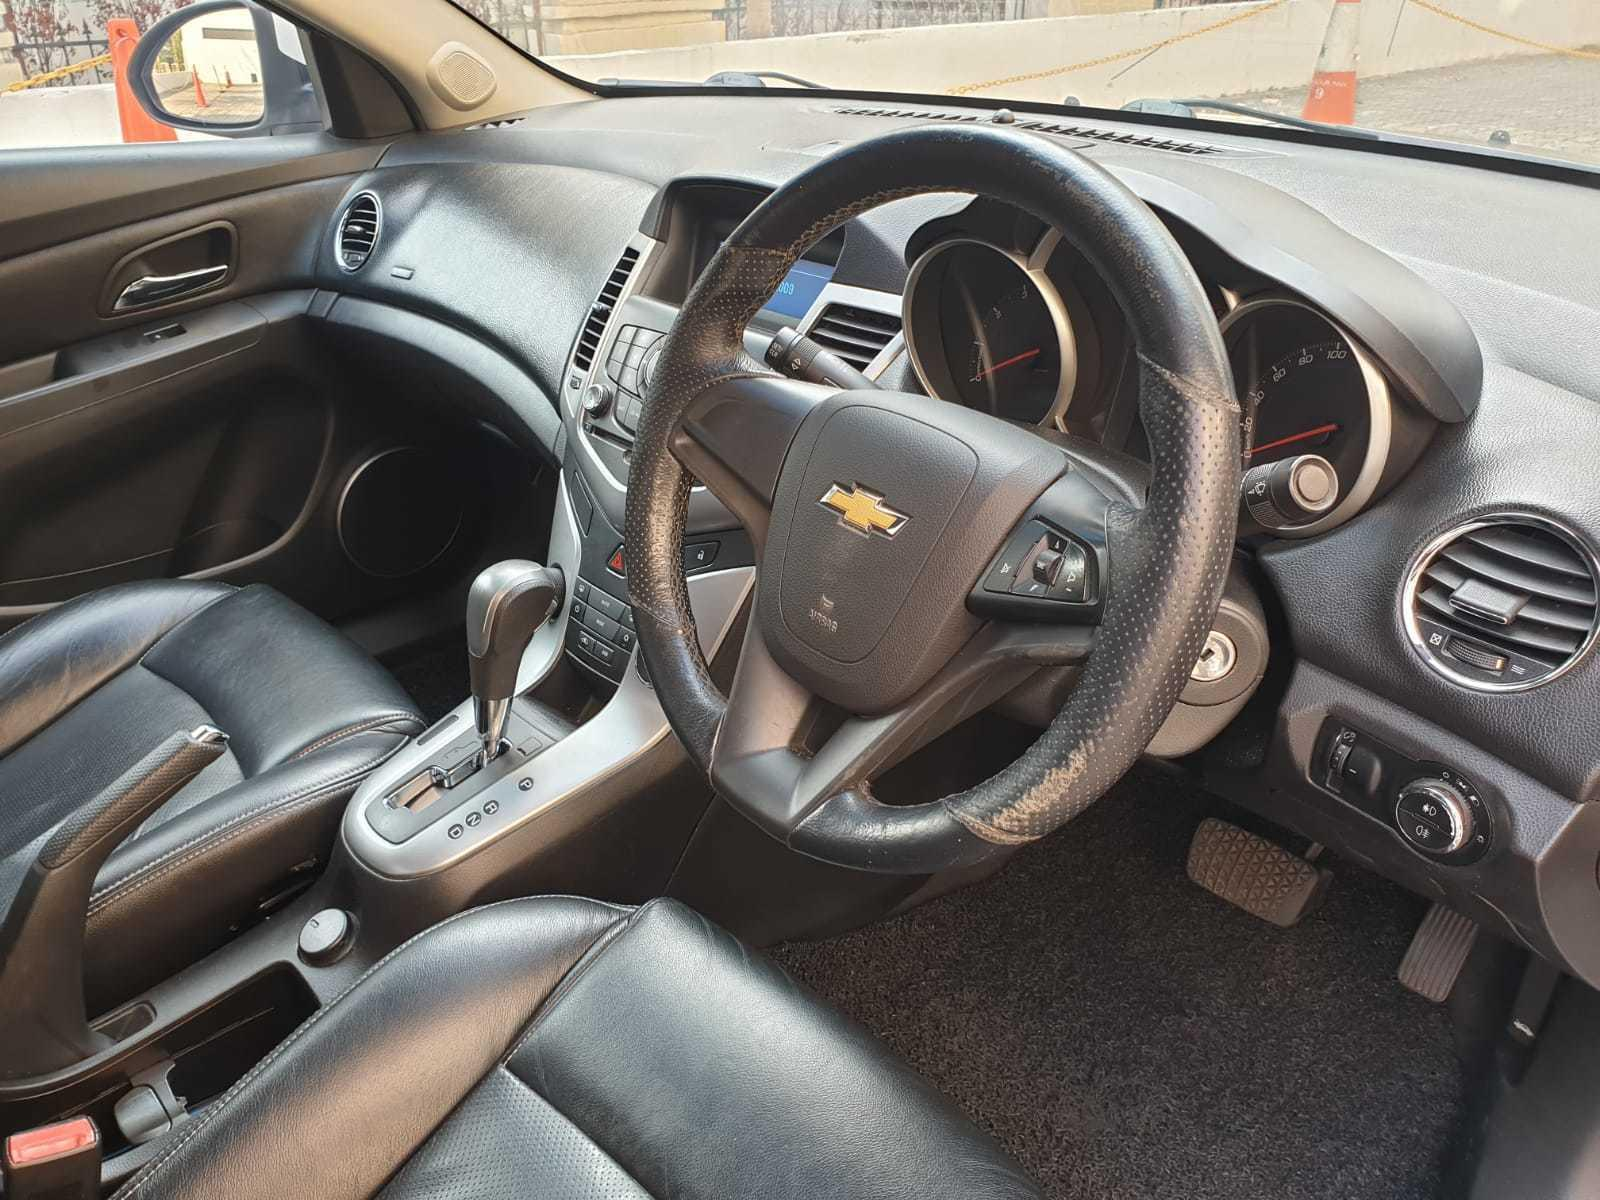 Chevrolet Cruze 1.6A - Best rates, full servicing provided!